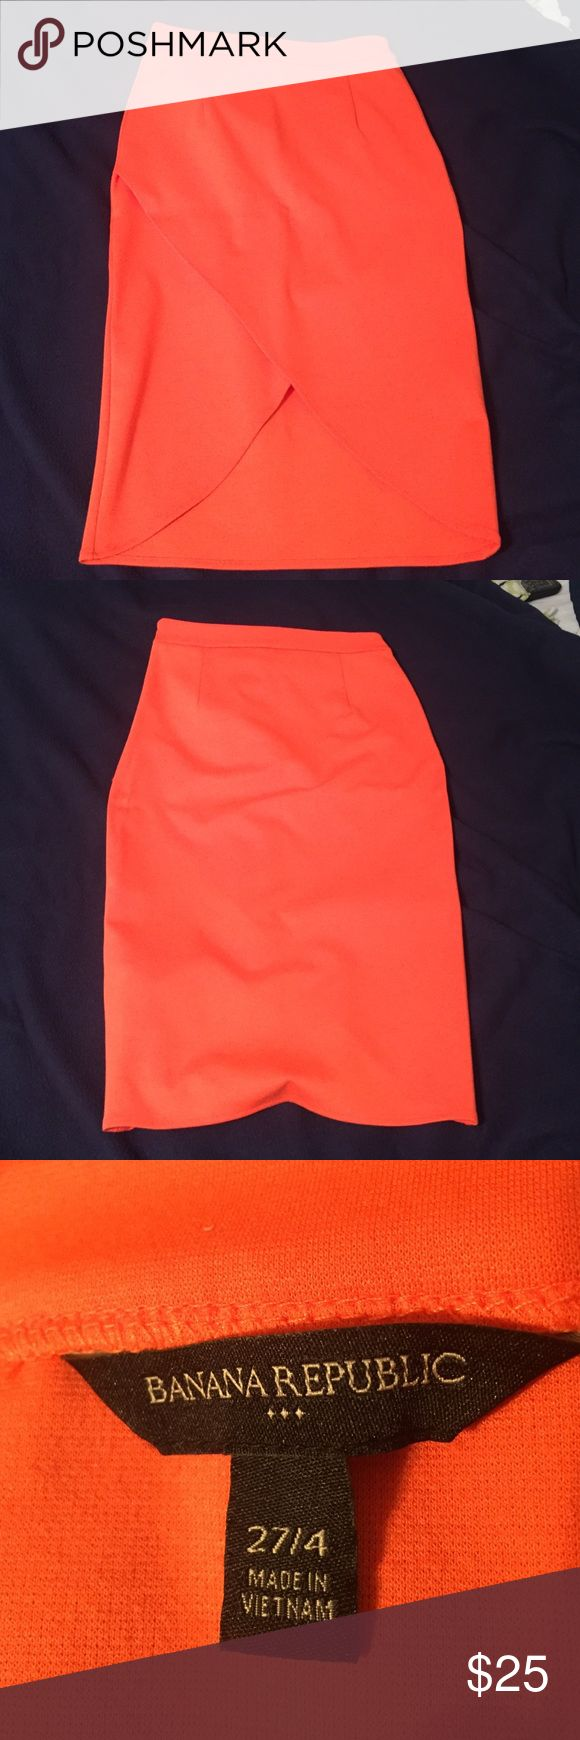 Faux Wrap Banana Republic Midi! Summer must have! Cotton banana republic midi skirt in beautiful bright orange color with awesome faux wrap design. Only worn once! Super soft and comfortable for warm weather, can be dressed up, down, and maybe even worn to work! Banana Republic Skirts Midi